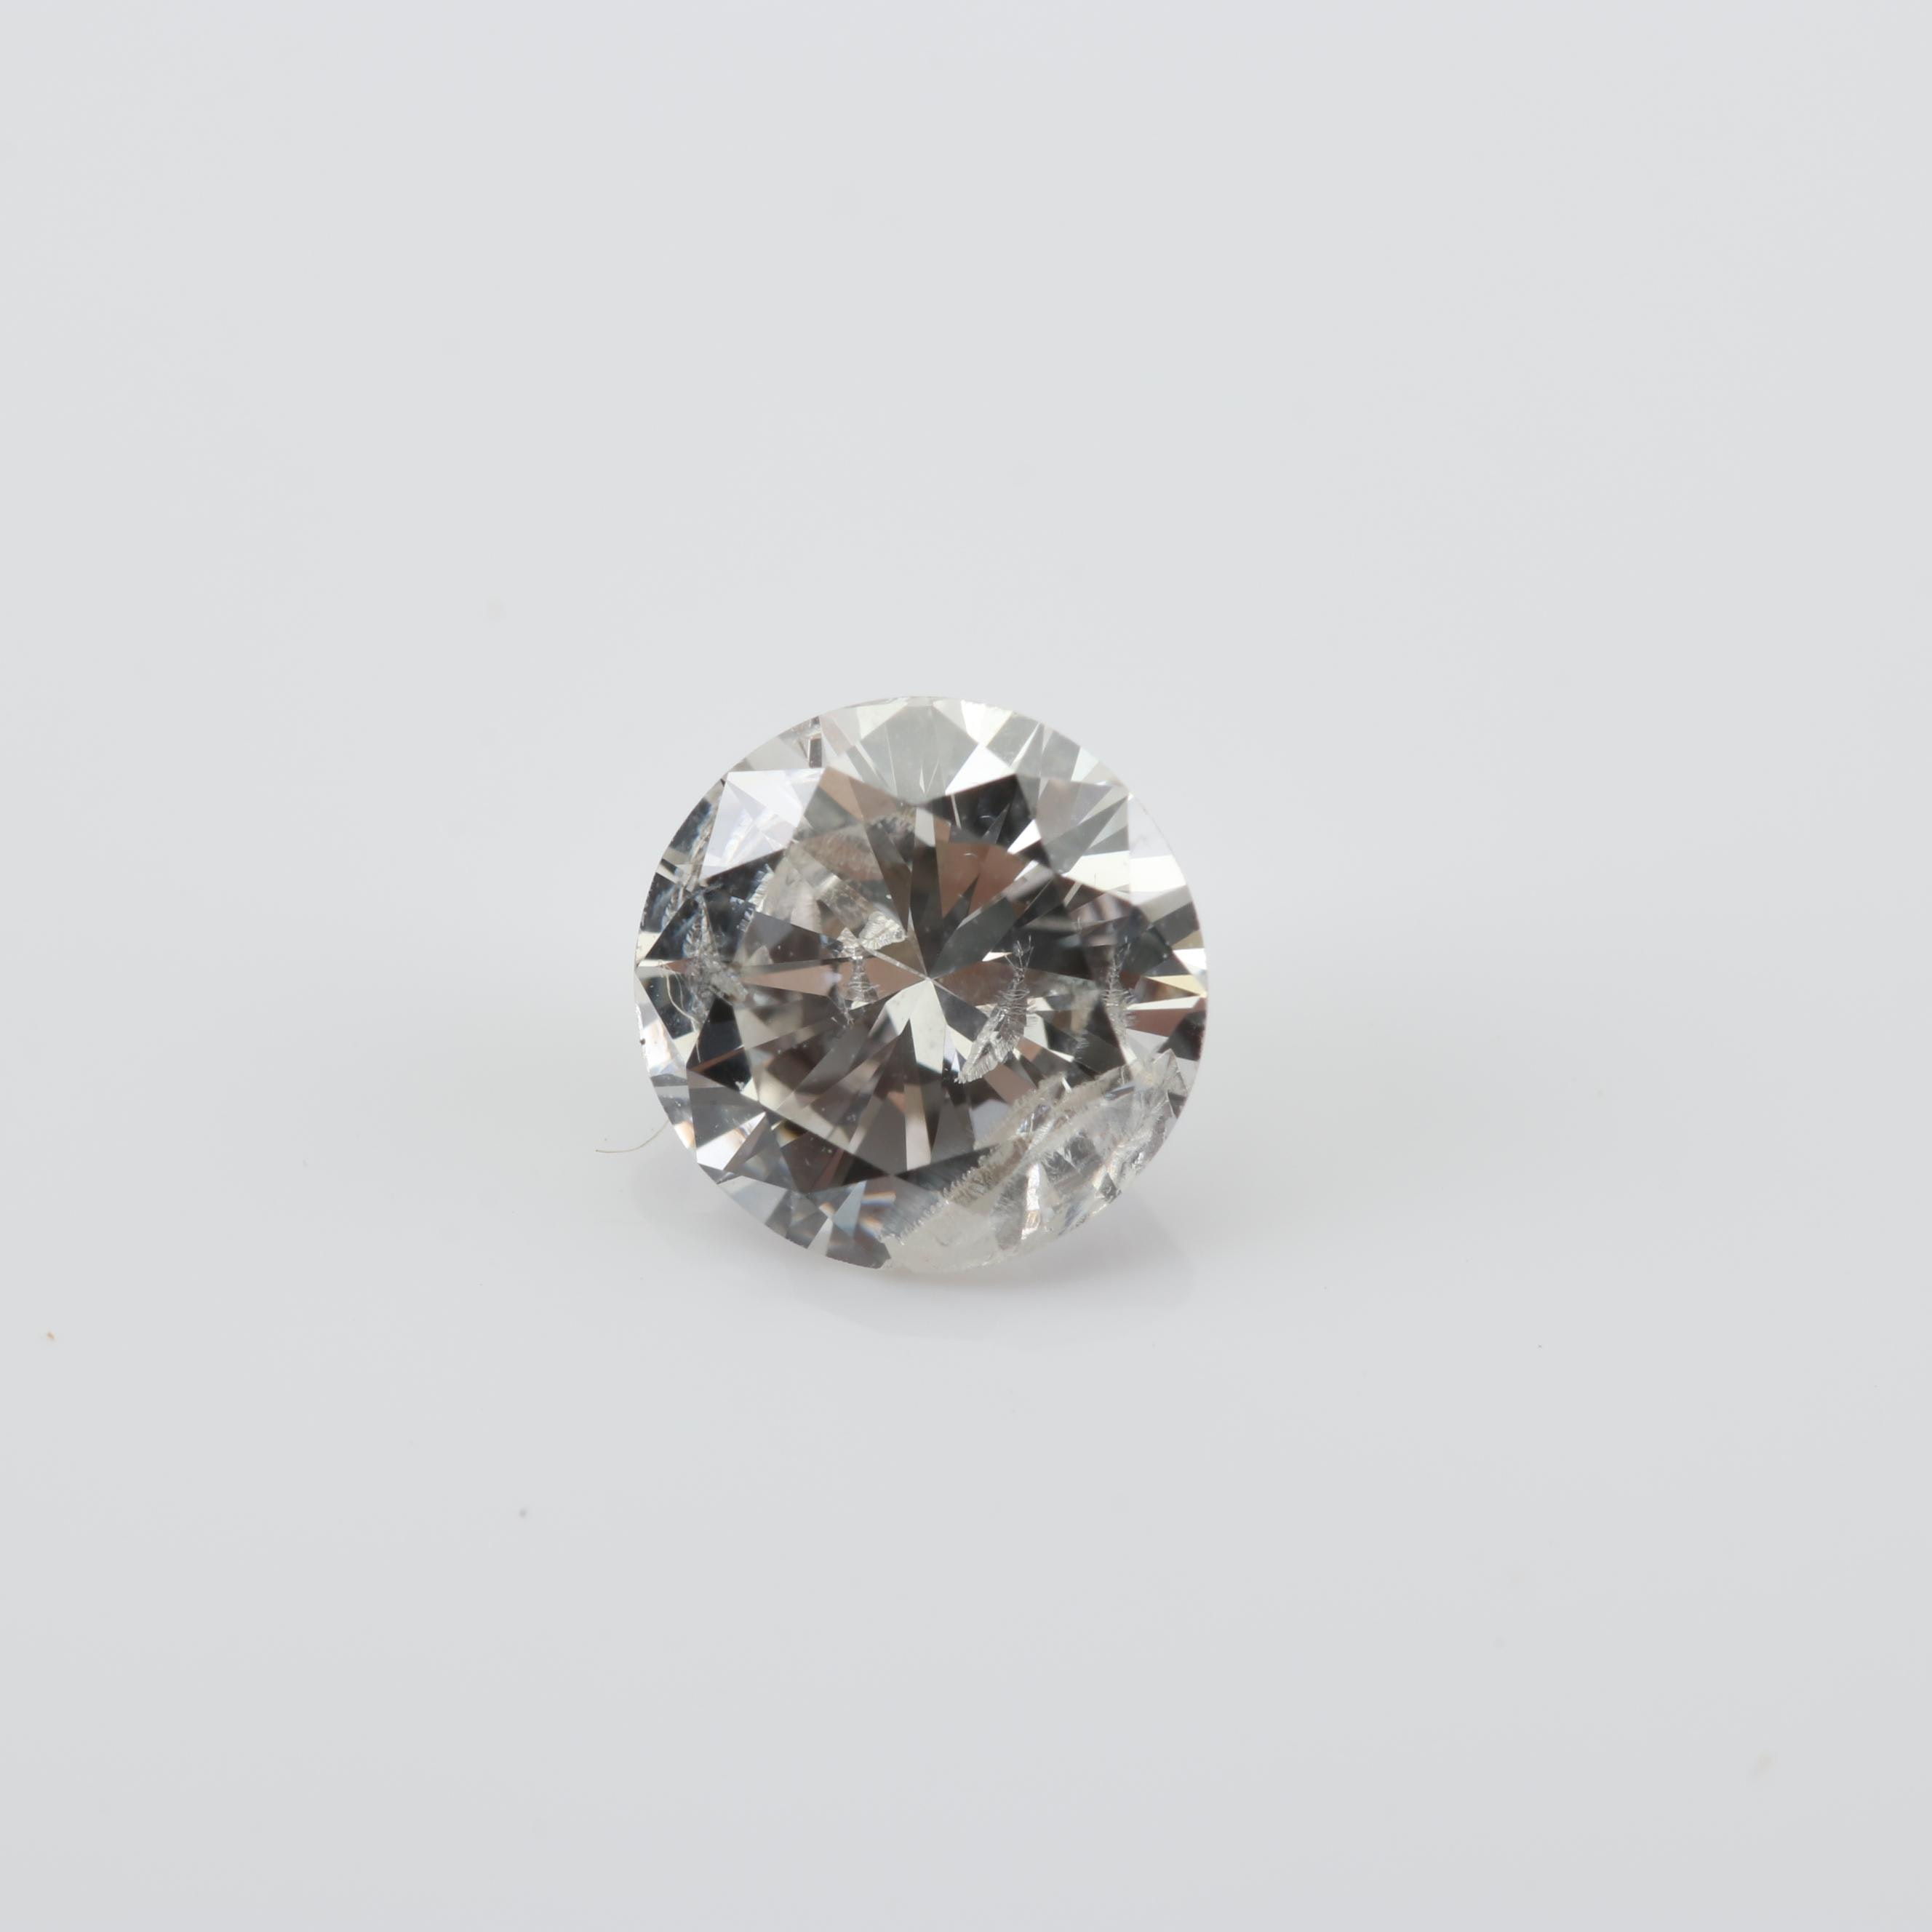 Loose 0.51 CT Diamond